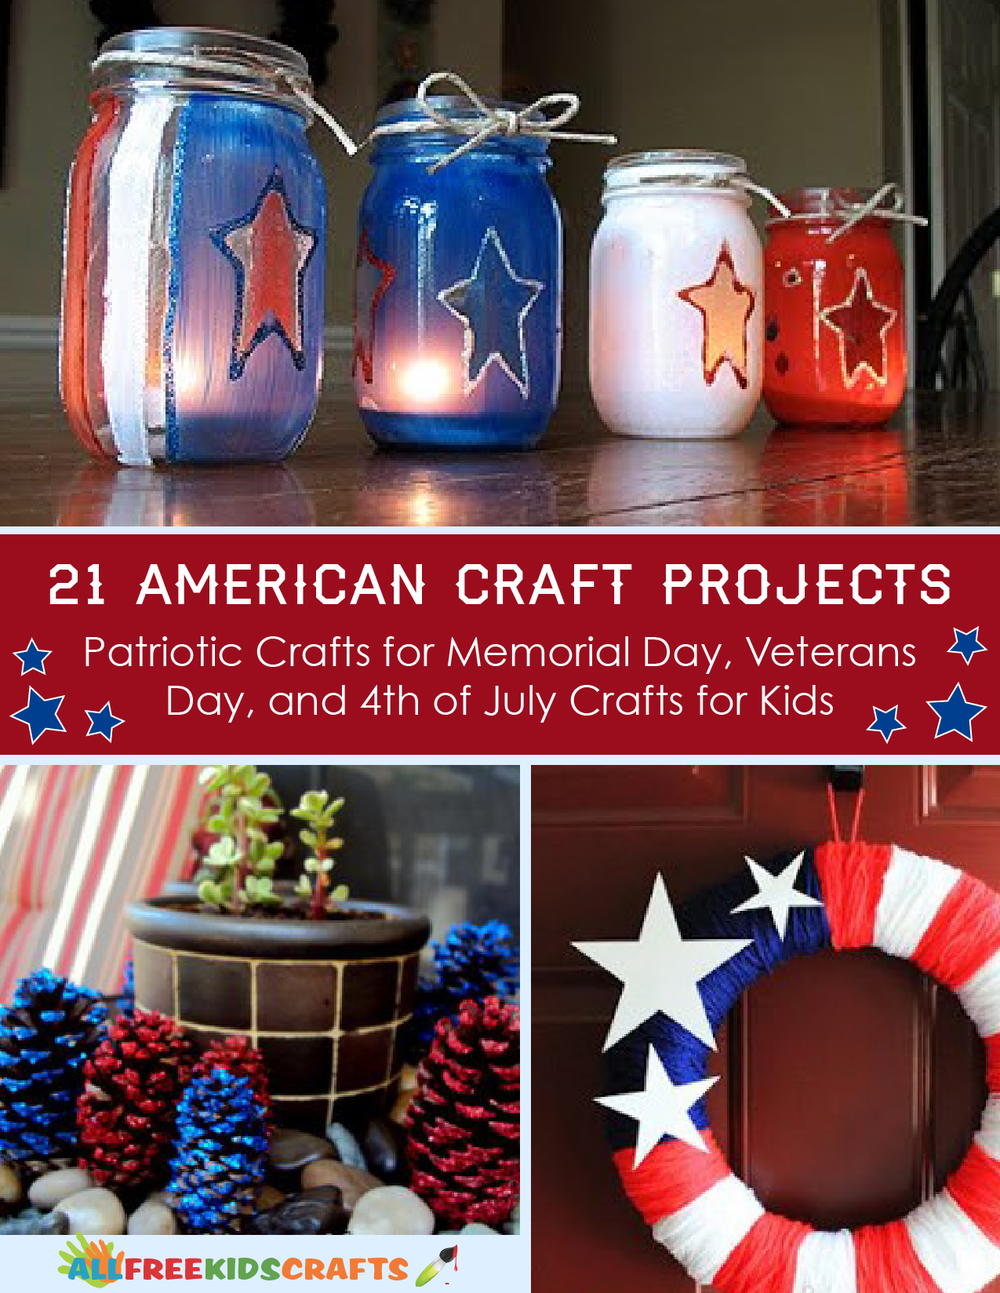 21 american craft projects: patriotic crafts for memorial day